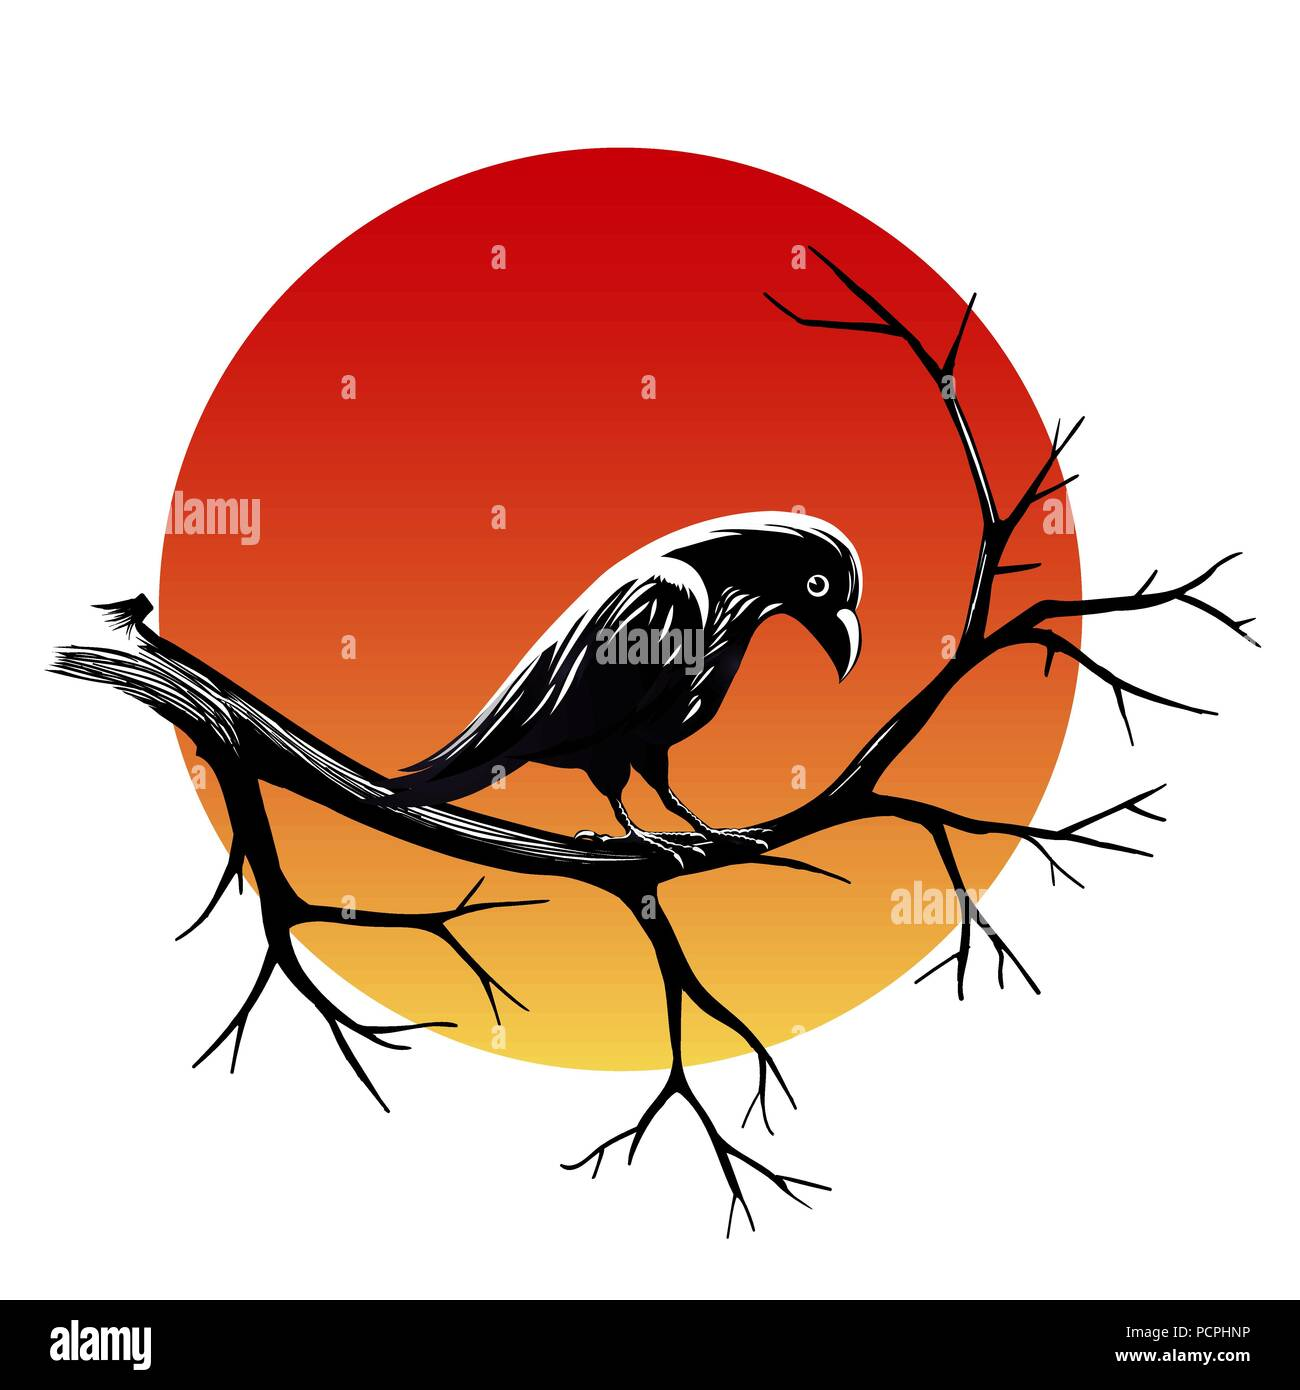 Black raven sitting on a branch of leafless tree against sun isolated on black. Vector illustration - Stock Image